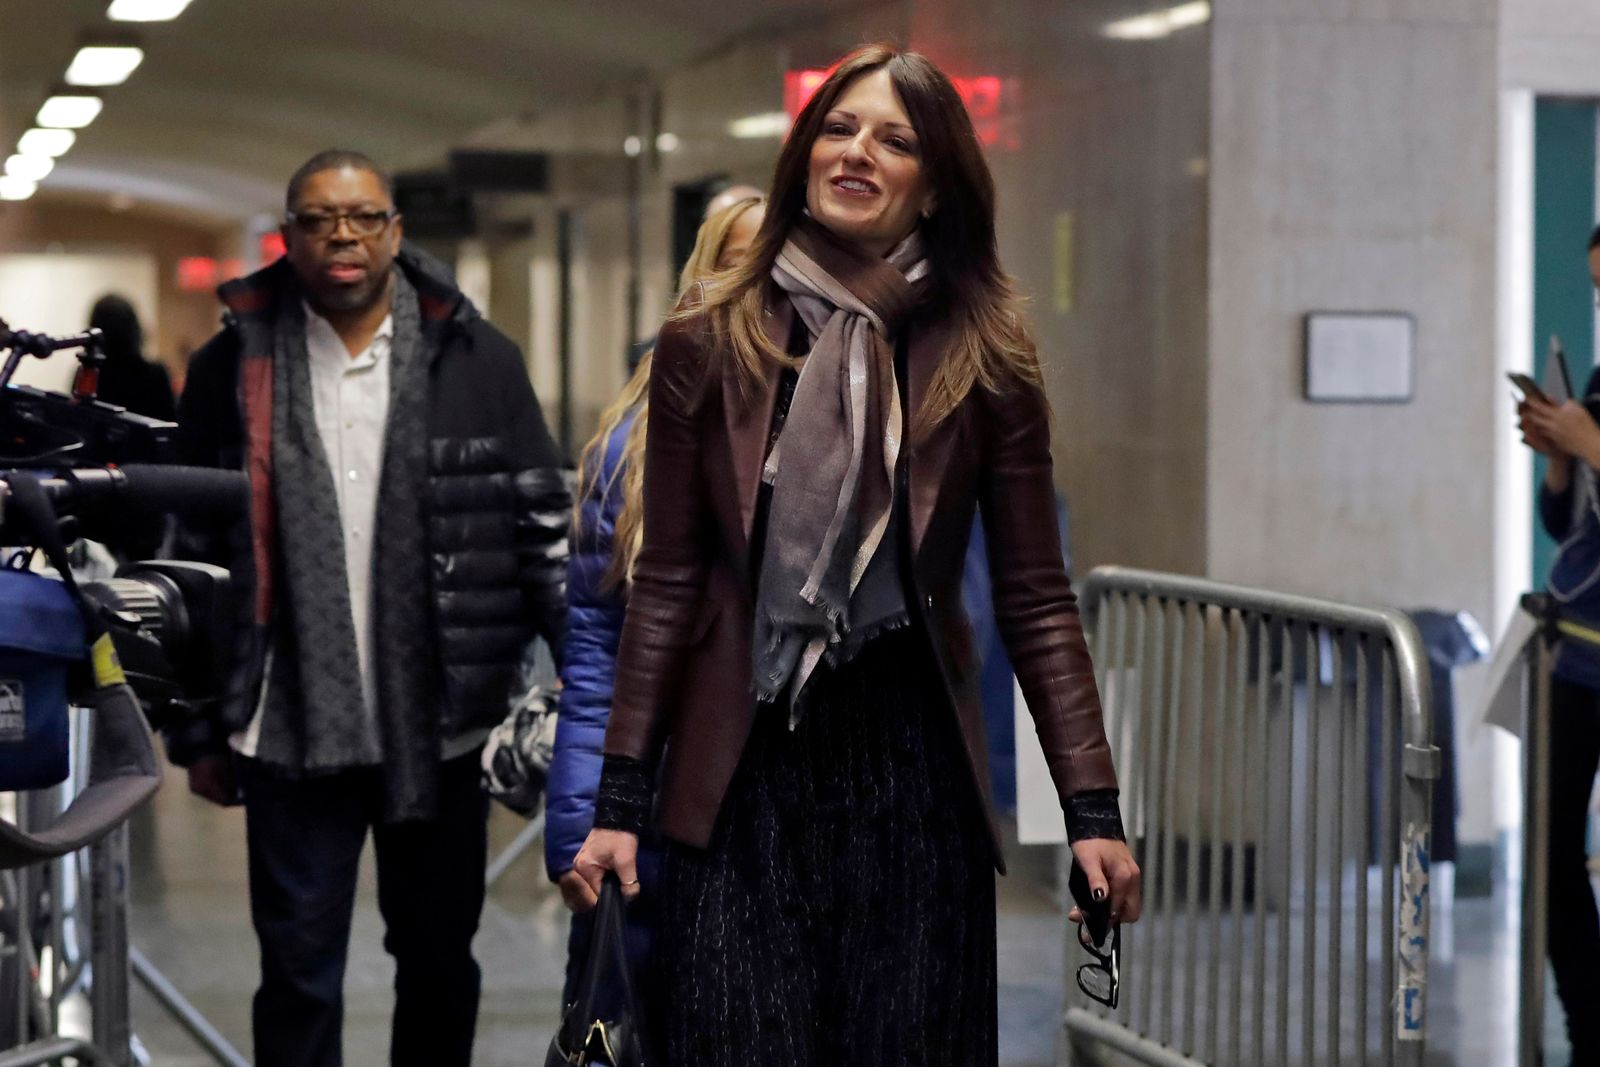 Donna Rotunno, attorney for Harvey Weinstein, arrives at court for his rape and sexual assault trial in New York, Friday, Jan. 24, 2020. (AP Photo/Richard Drew)